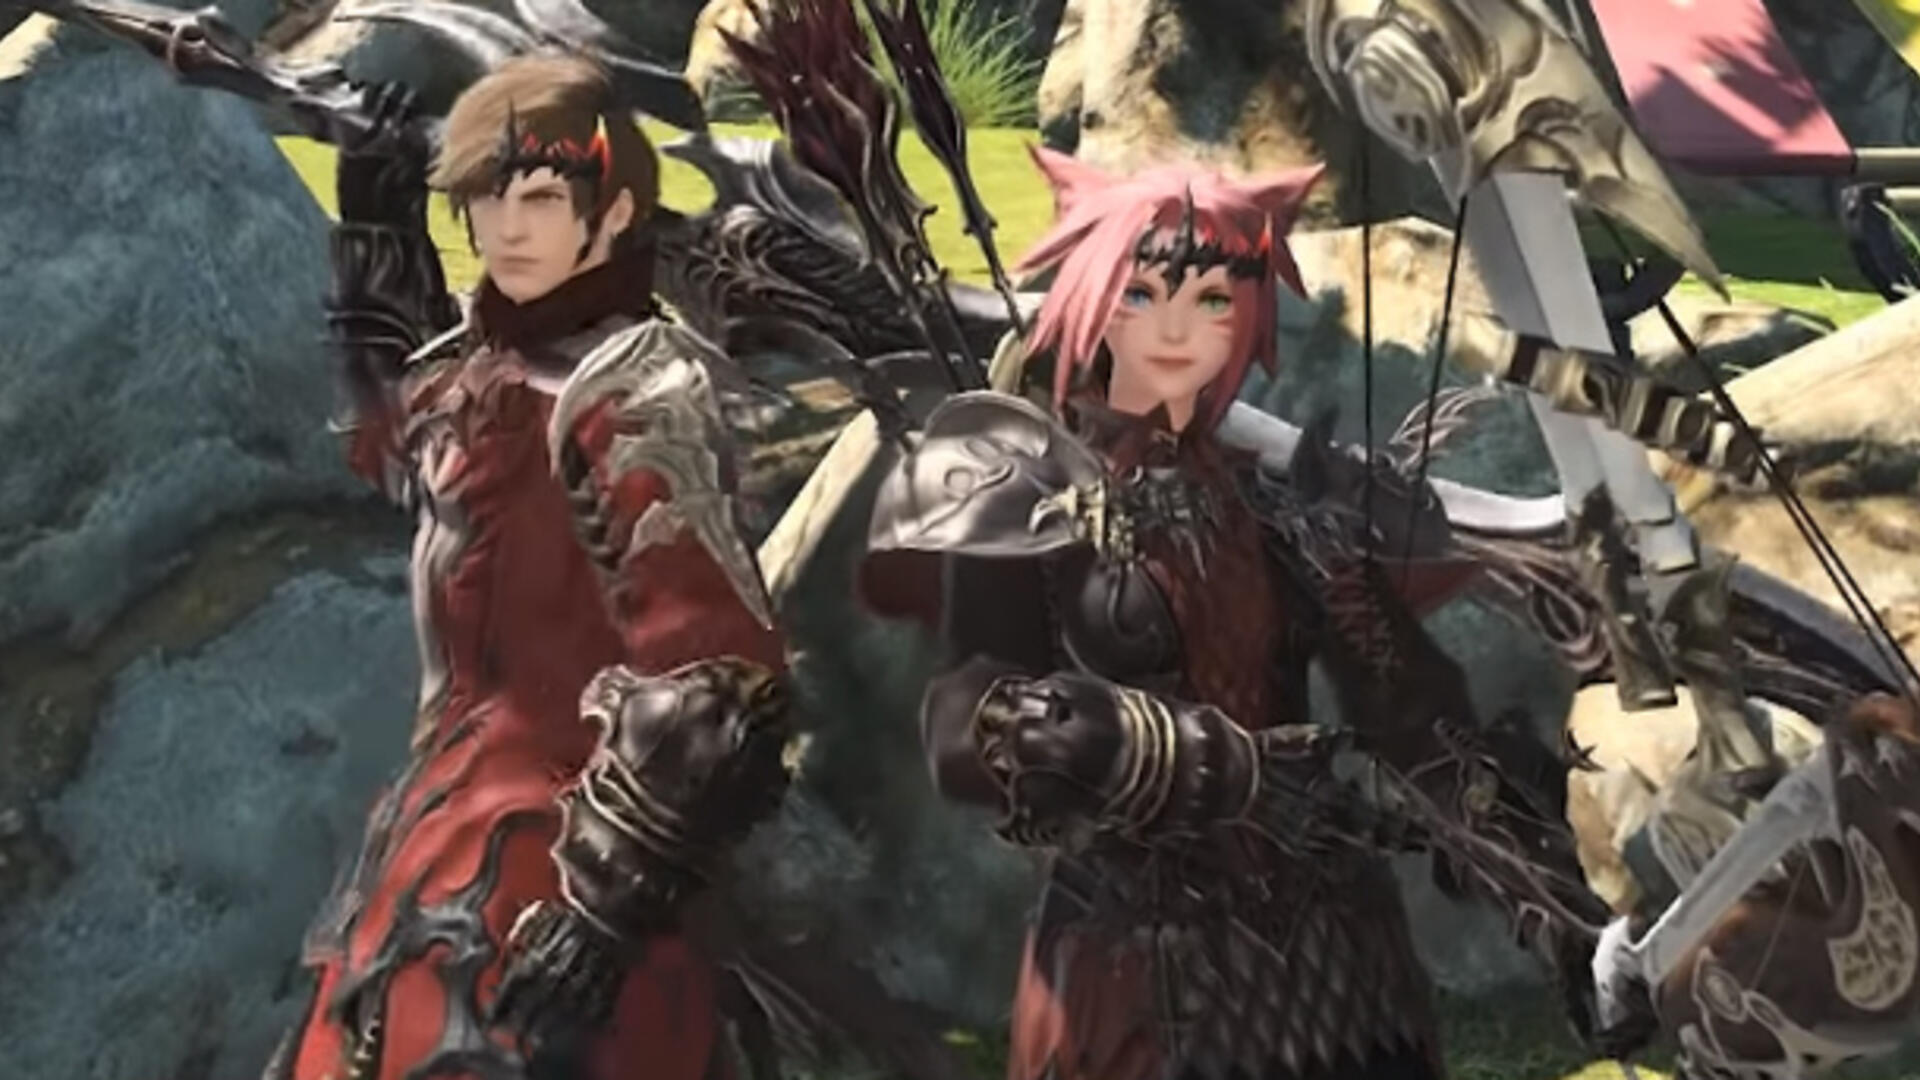 Final Fantasy XIV Players Can Grab Monster Hunter World's Rathalos as a Mount